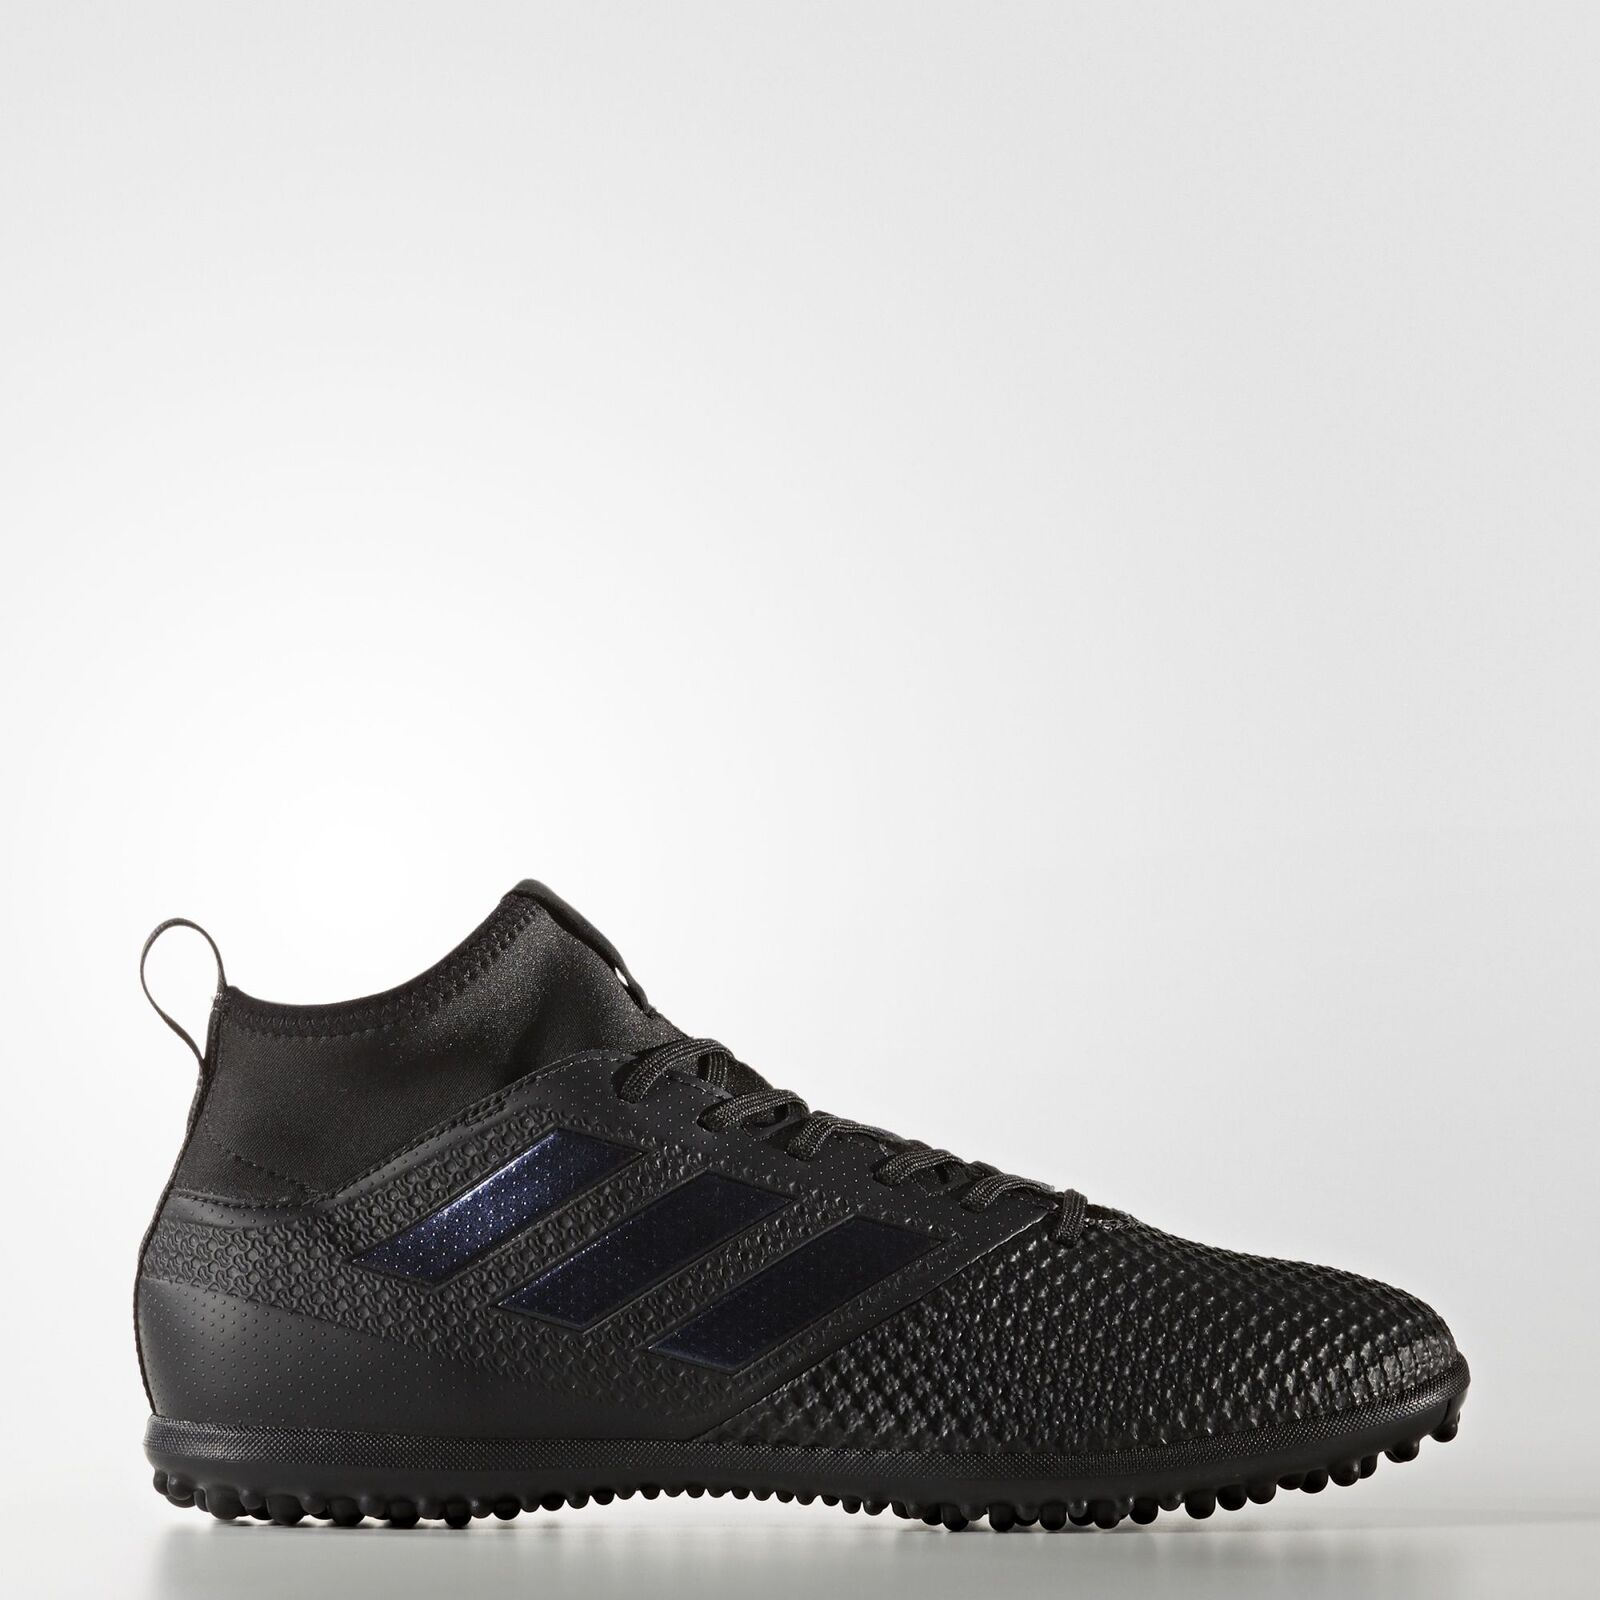 New Adidas Ace Tango 17.3 TF Indoor Soccer Turf Shoes All Black S77084